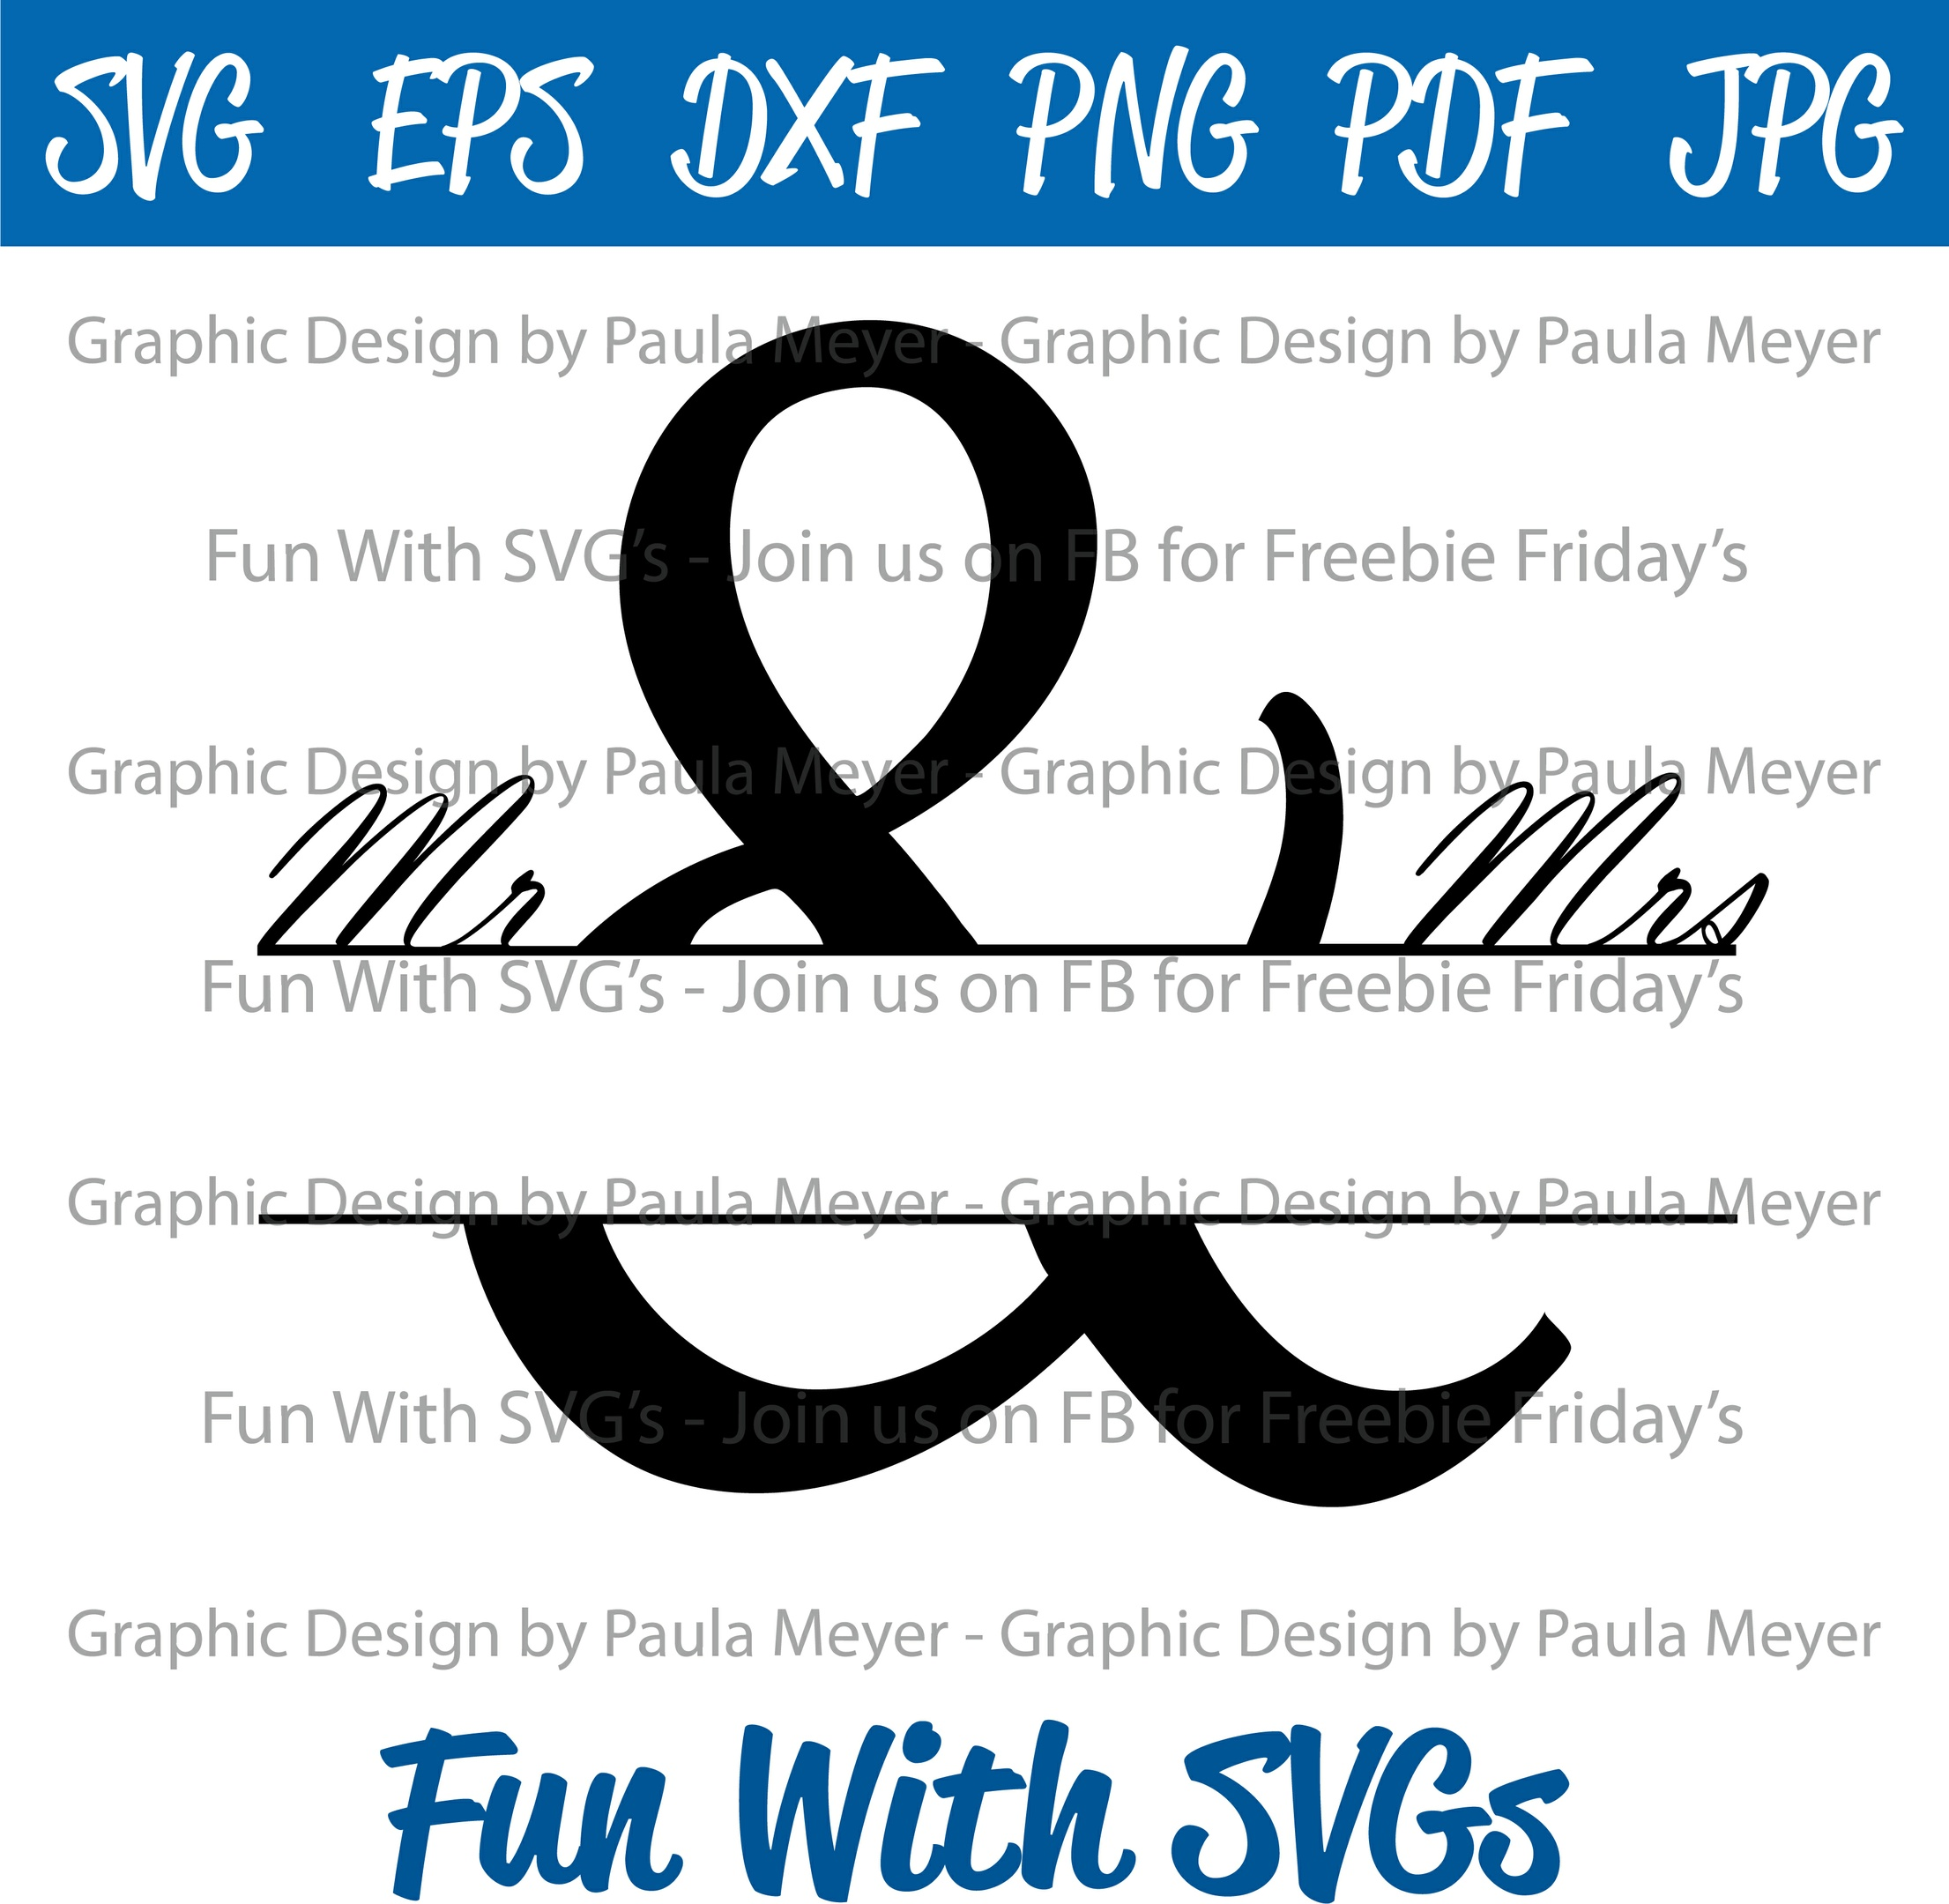 Mr. and Mrs. Monogram 2 - SVG Cut File, High Resolution Printable Graphics and Editable Vector Art